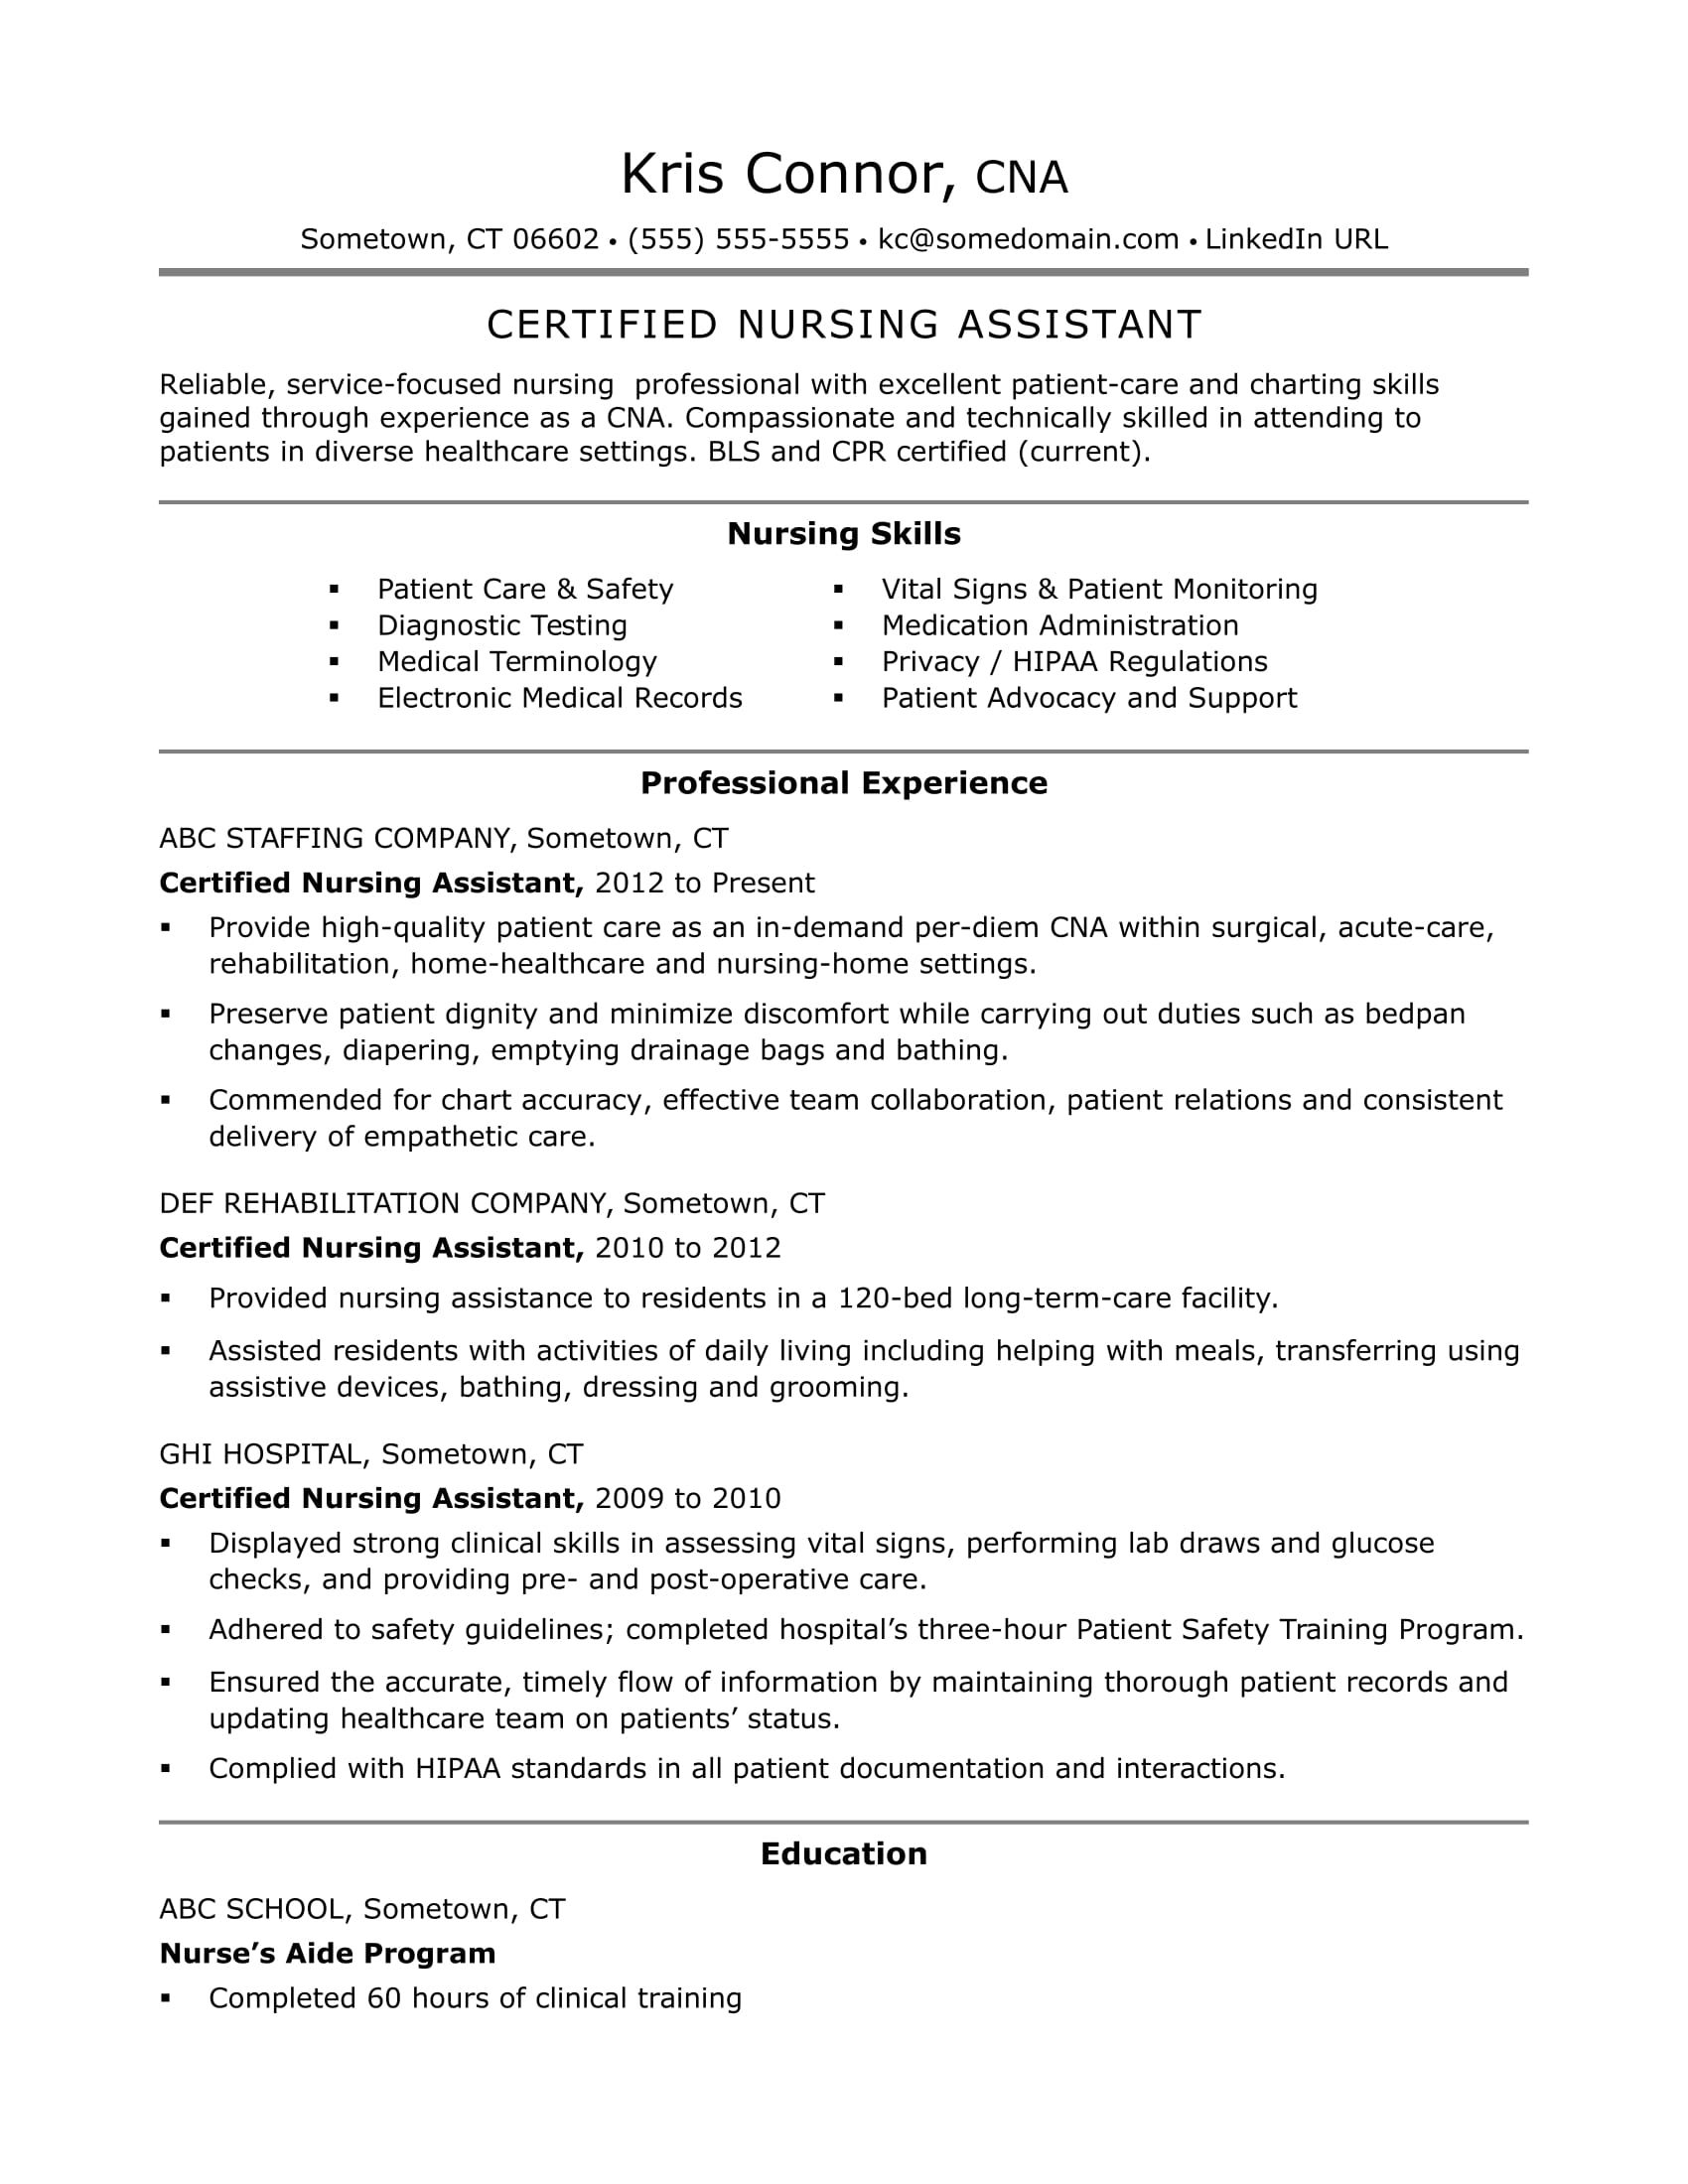 cna resume example - Sample Nursing Assistant Resume